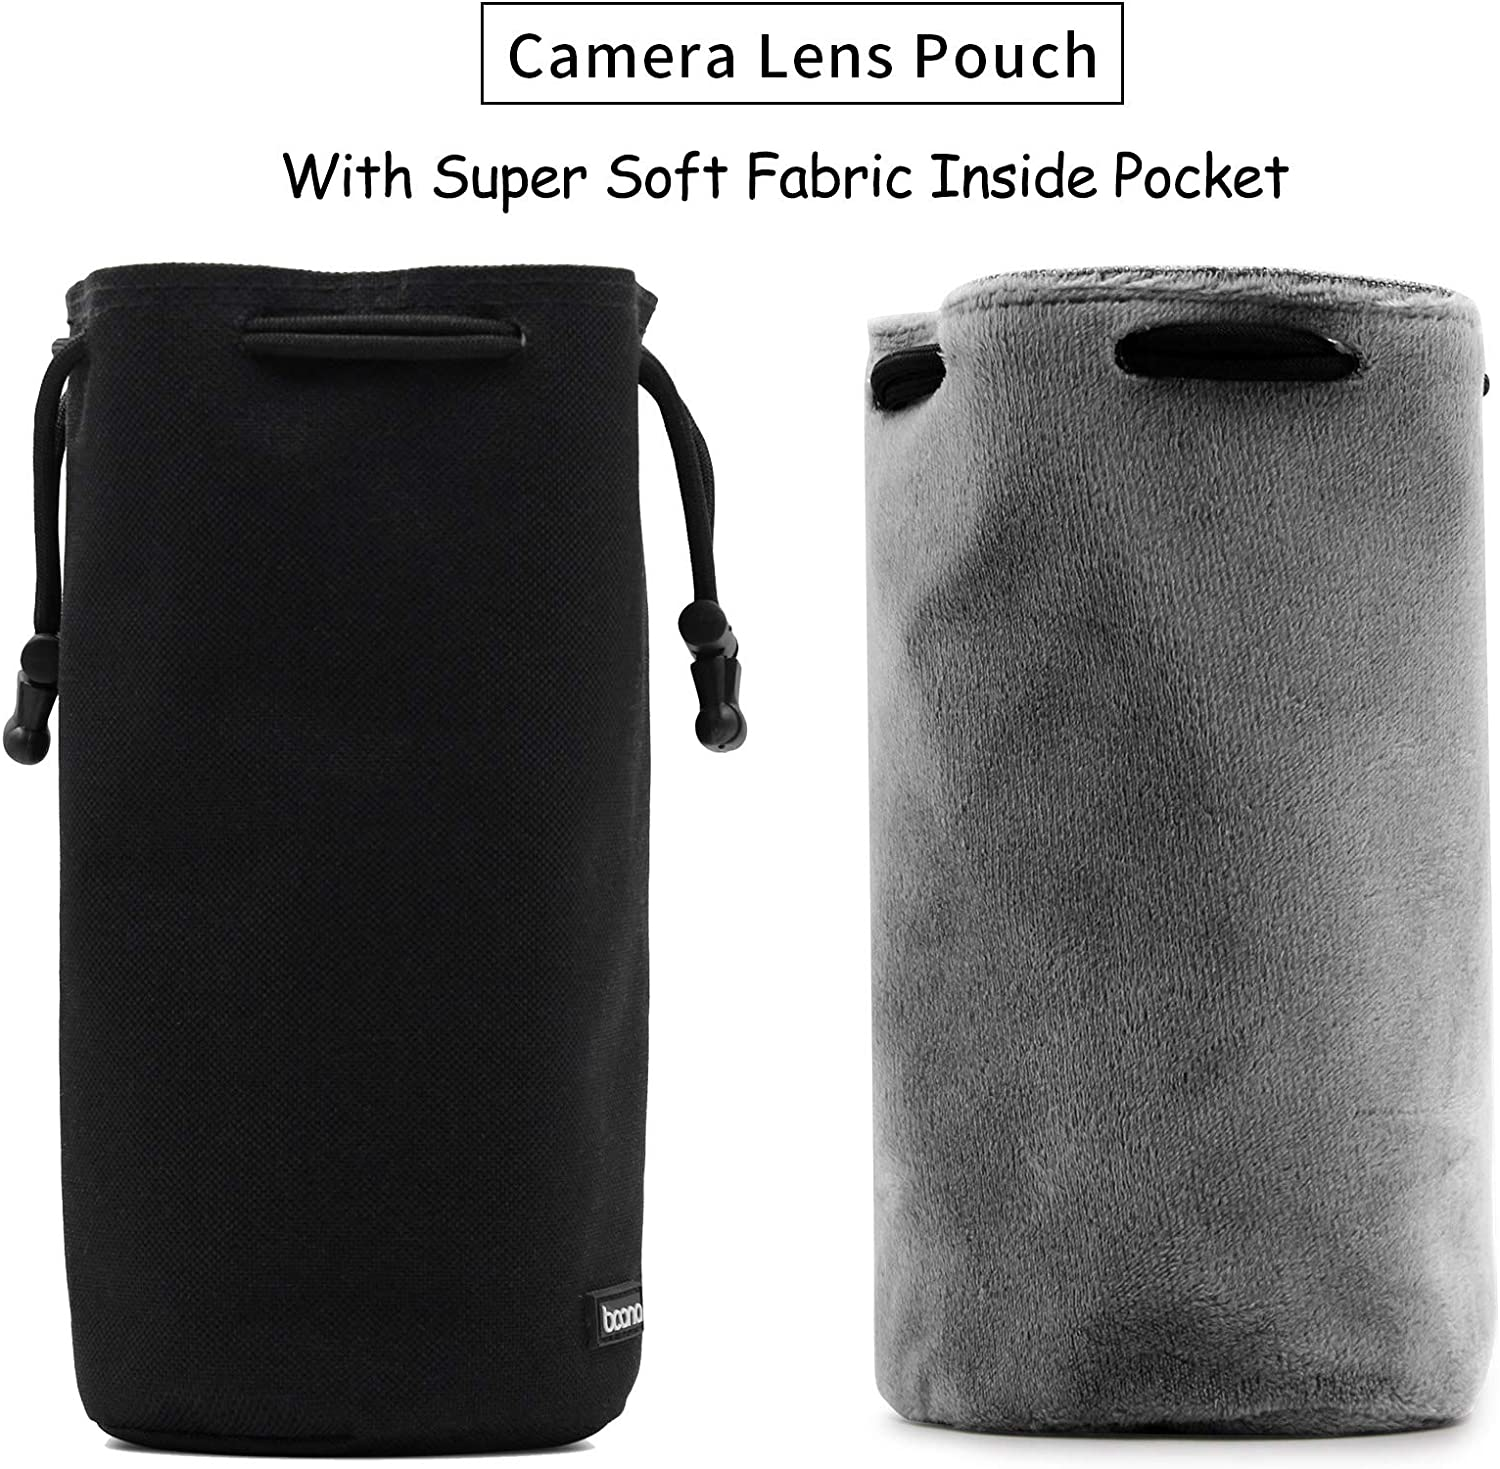 5.9x3.94x8.26 GreyVelvet Protector Video Drawing Case for DSLR Camera Lens Canon, Nikon, Pentax, Sony, Olympus, Panasonic BOONA Waterproof Lens Bag with Shoulder Strap